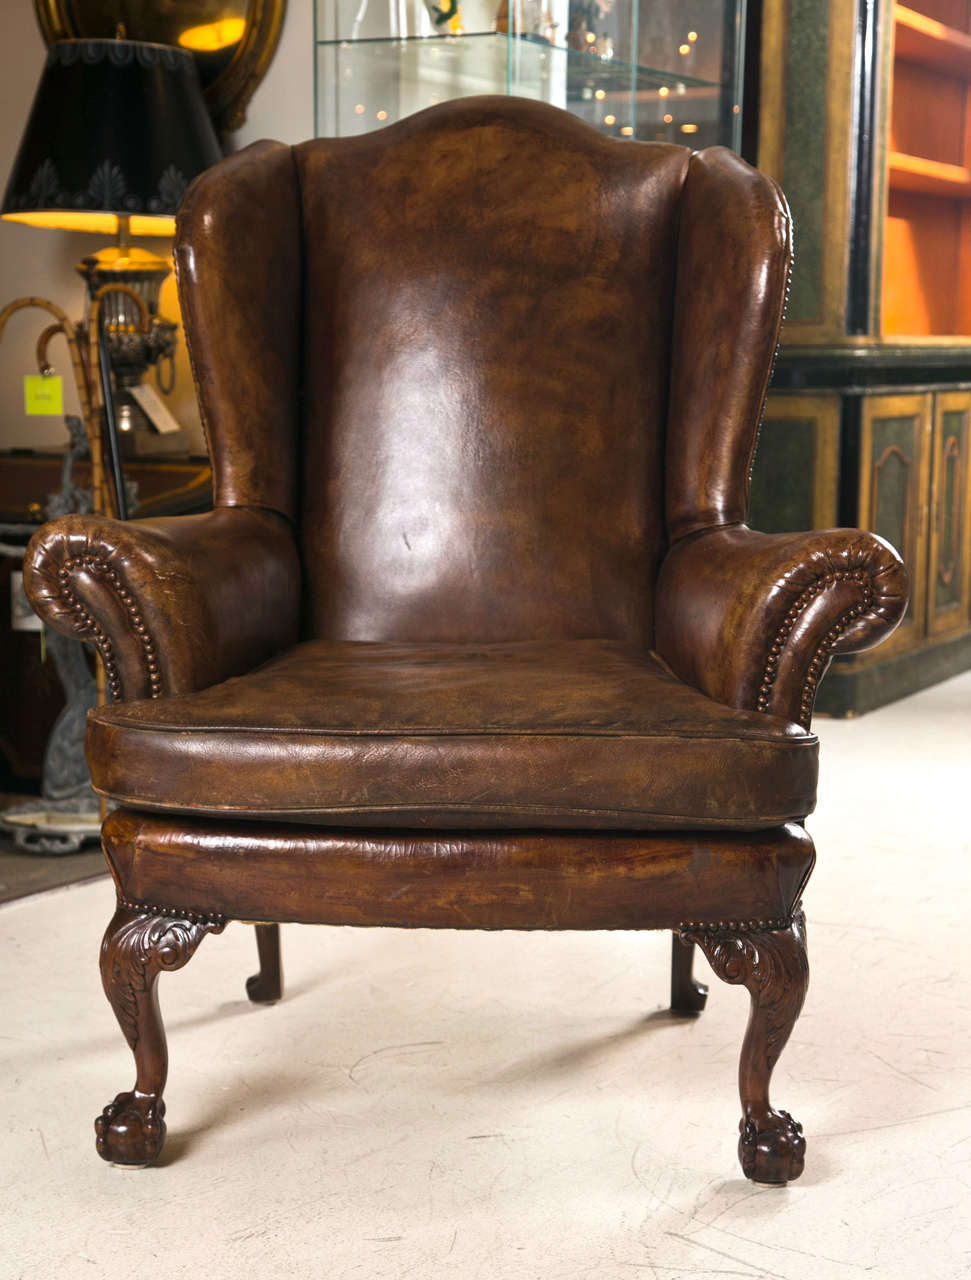 Brown Leather Wingback Chair Late 19th C Leather Wingback Chair With Ball And Claw Feet